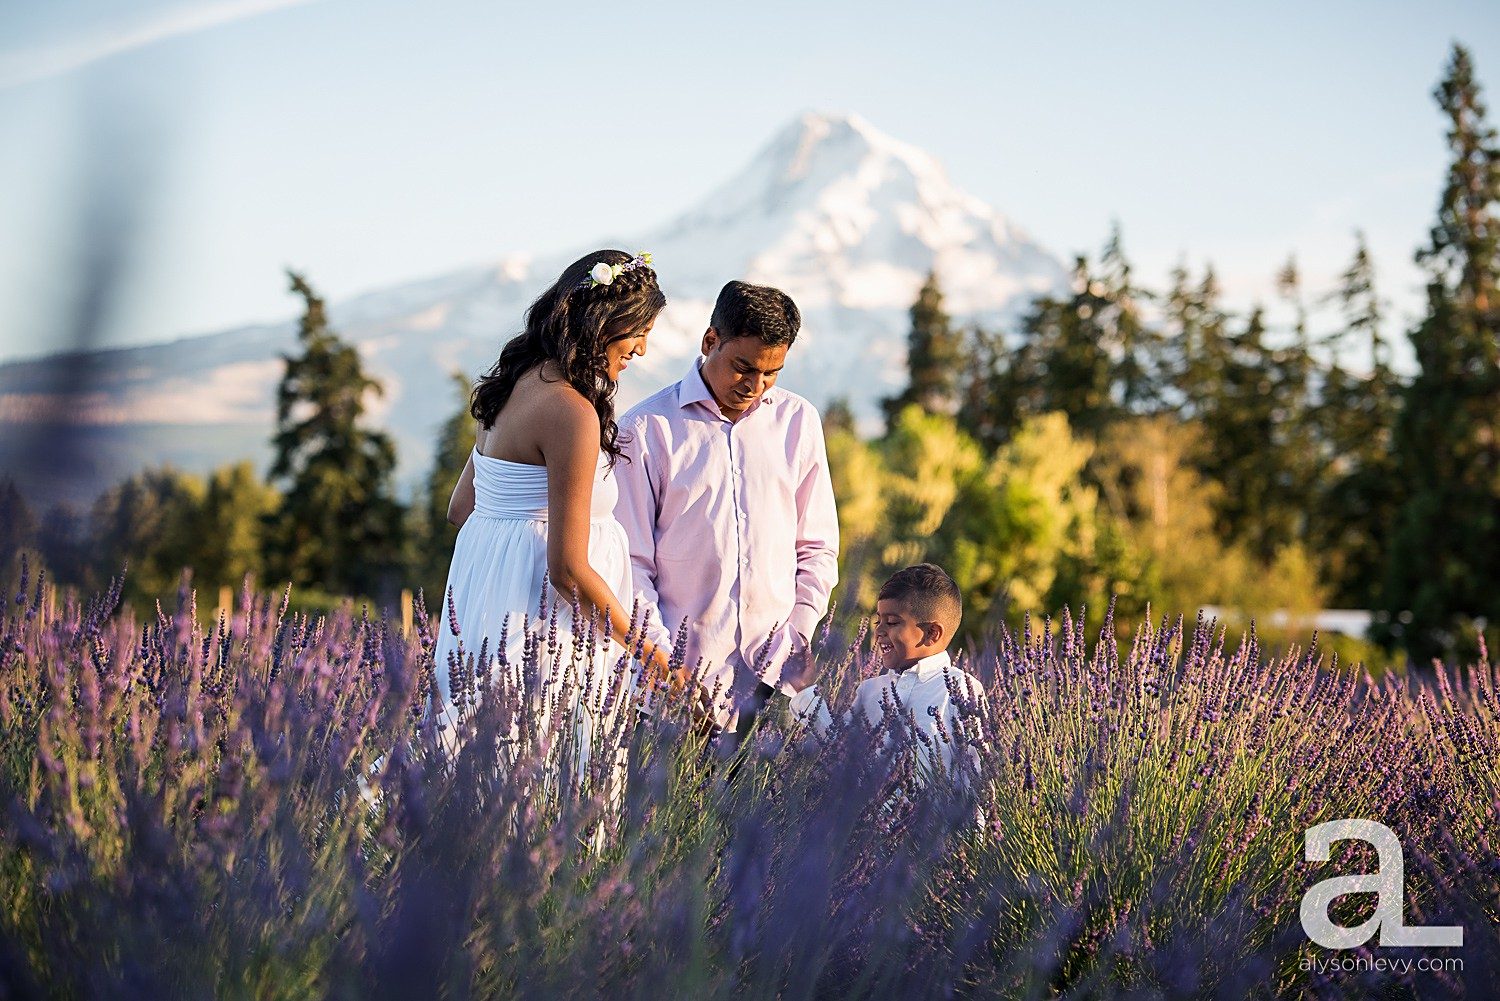 Hood-River-Lavender-Valley-Maternity-Photography_0009.jpg